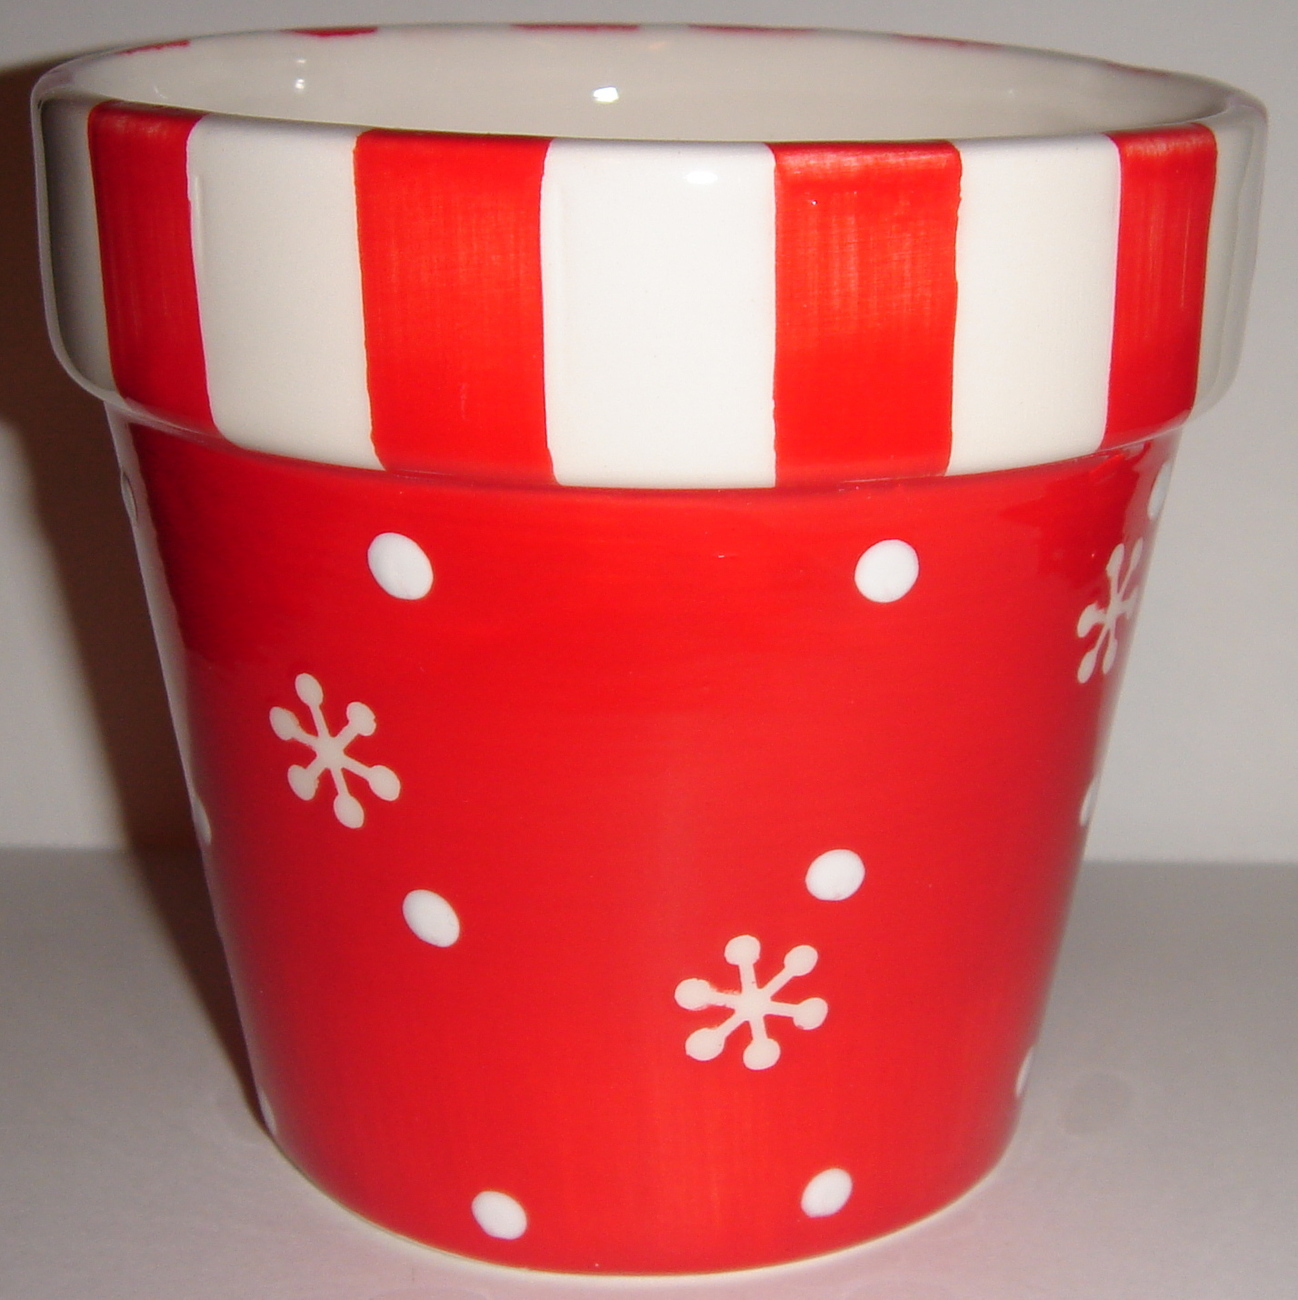 Red & White Ceramic Pot Shaped like a Planter